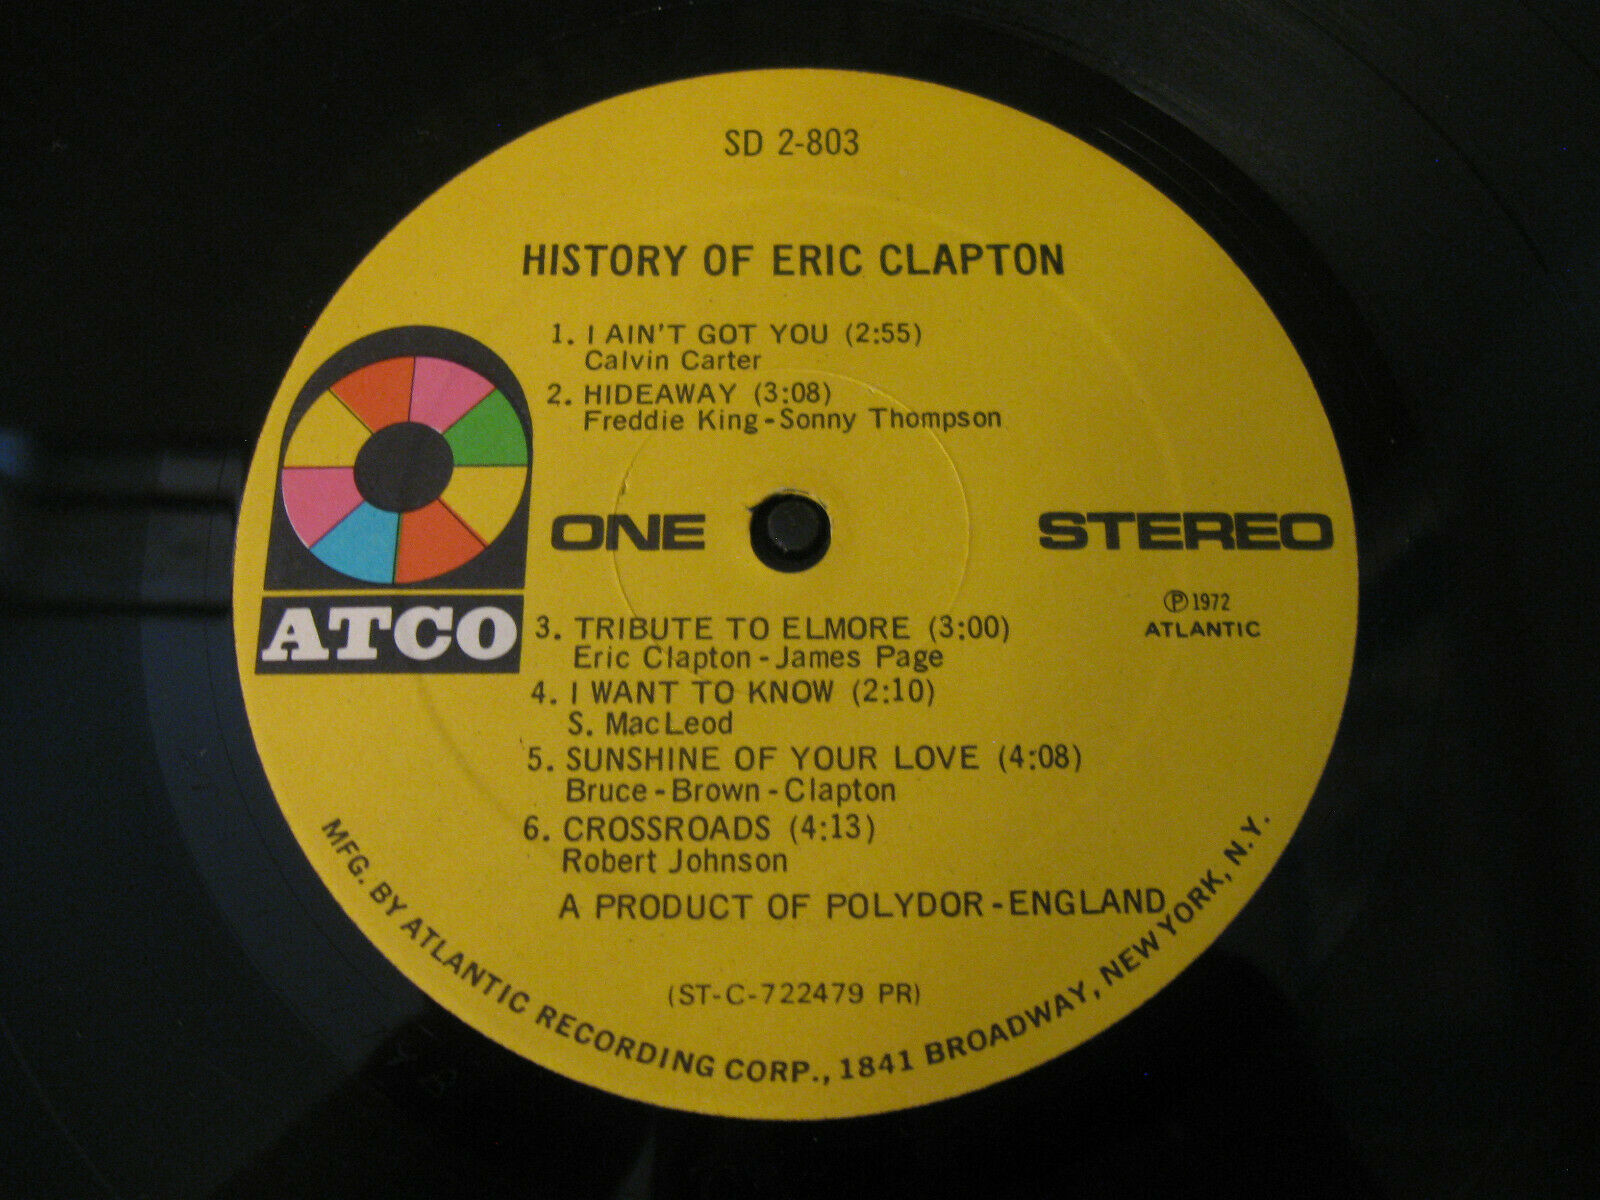 Eric Clapton History Of Atco SD 2-803 Stereo Double Vinyl Record LP image 5